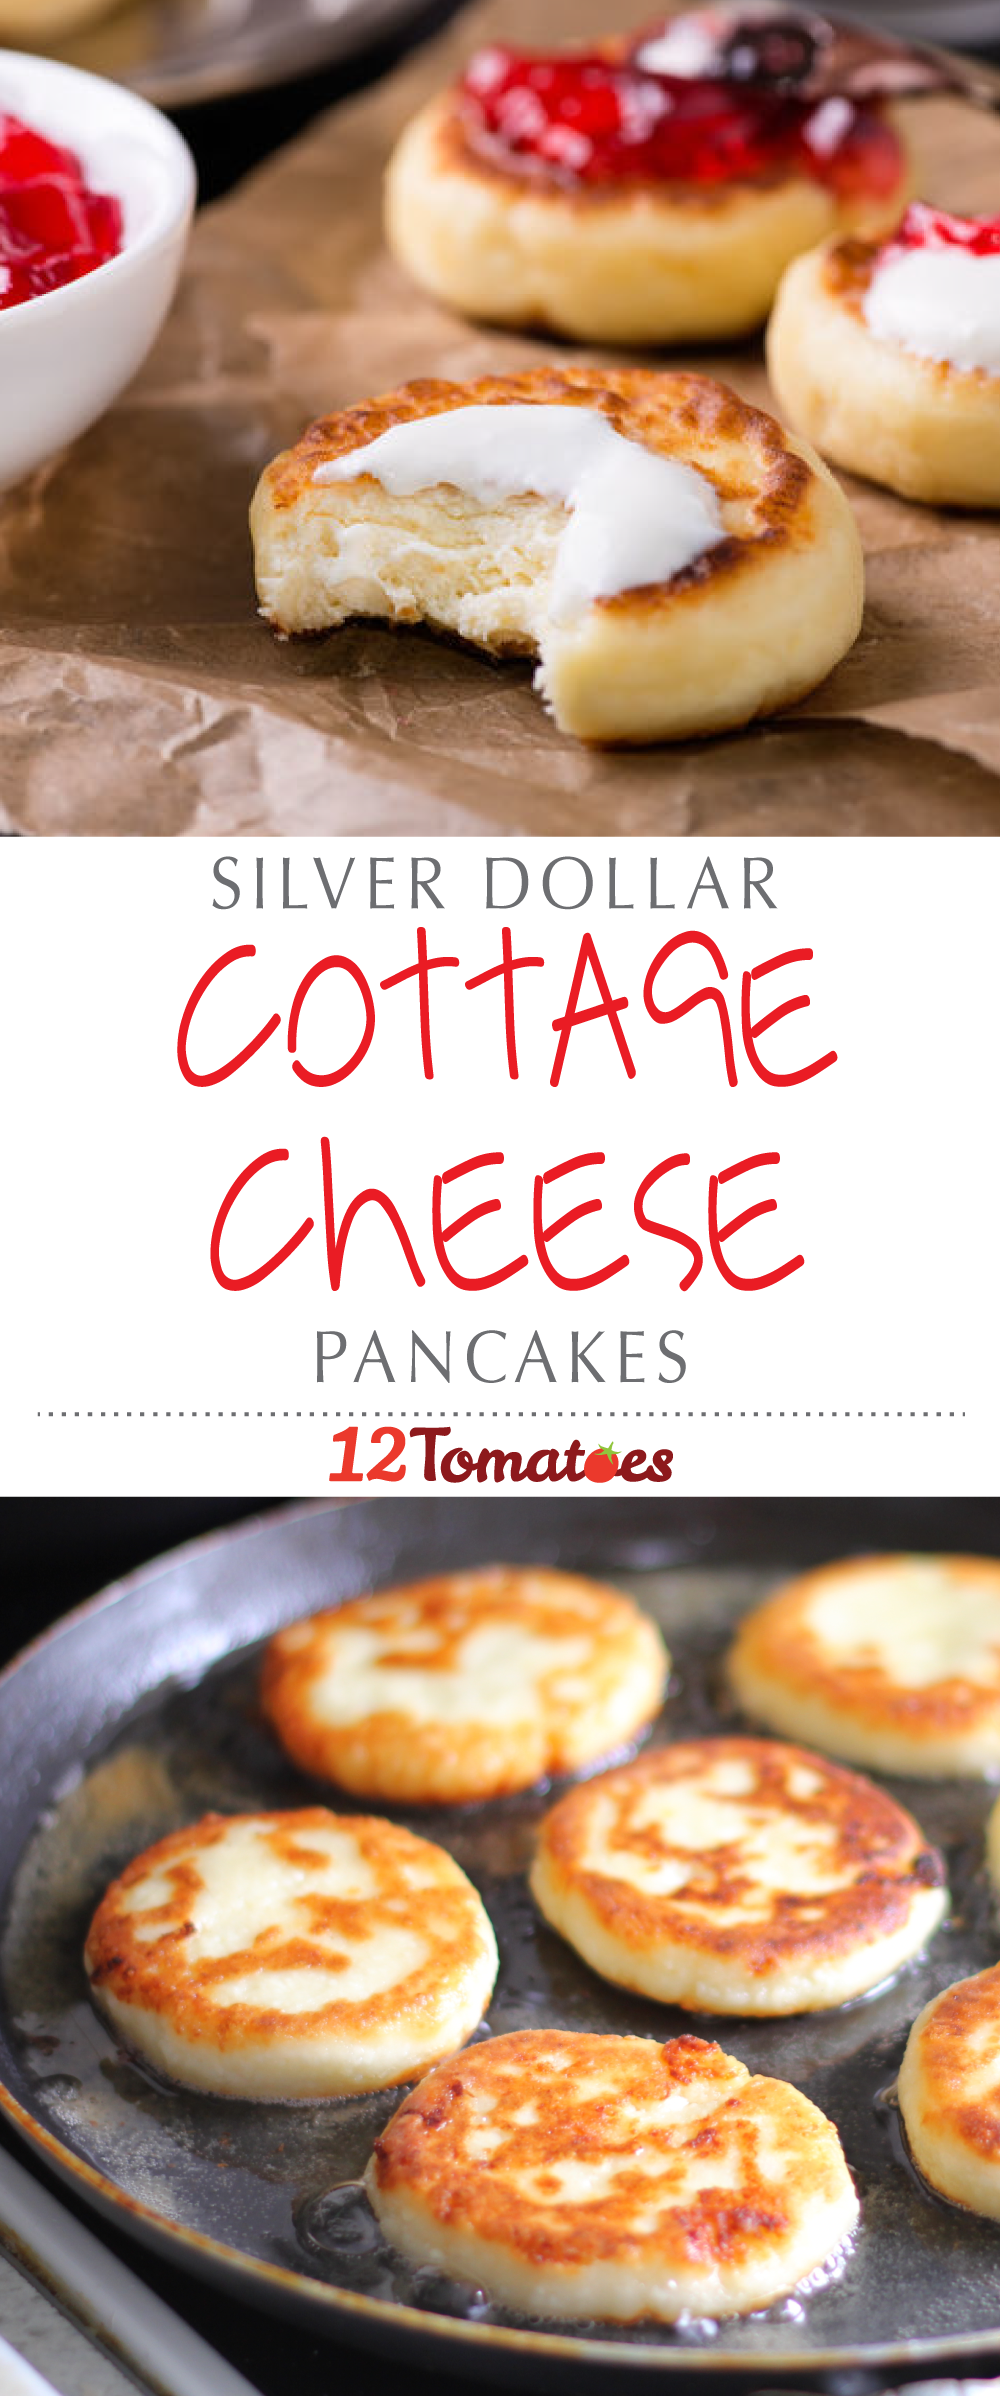 Captivating Silver Dollar Cottage Cheese Pancakes | Thatu0027s Right, Stuffed With Protein Packed  Cottage Cheese